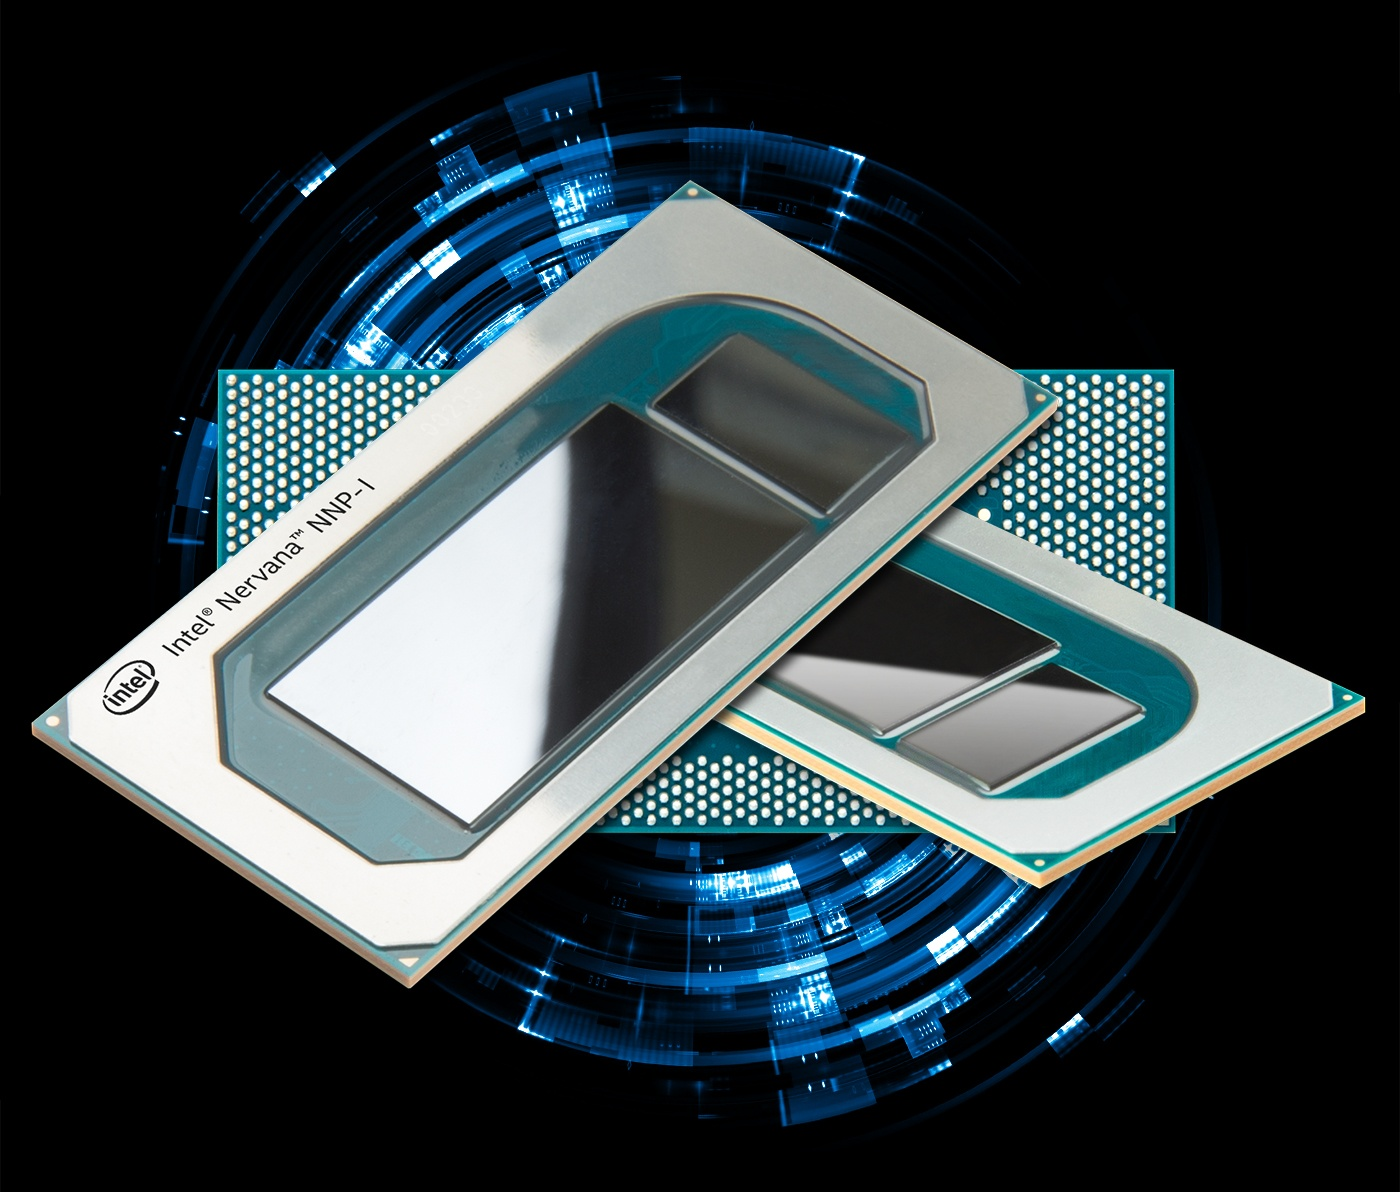 Intel Nervana Neural Network Processors for Inference